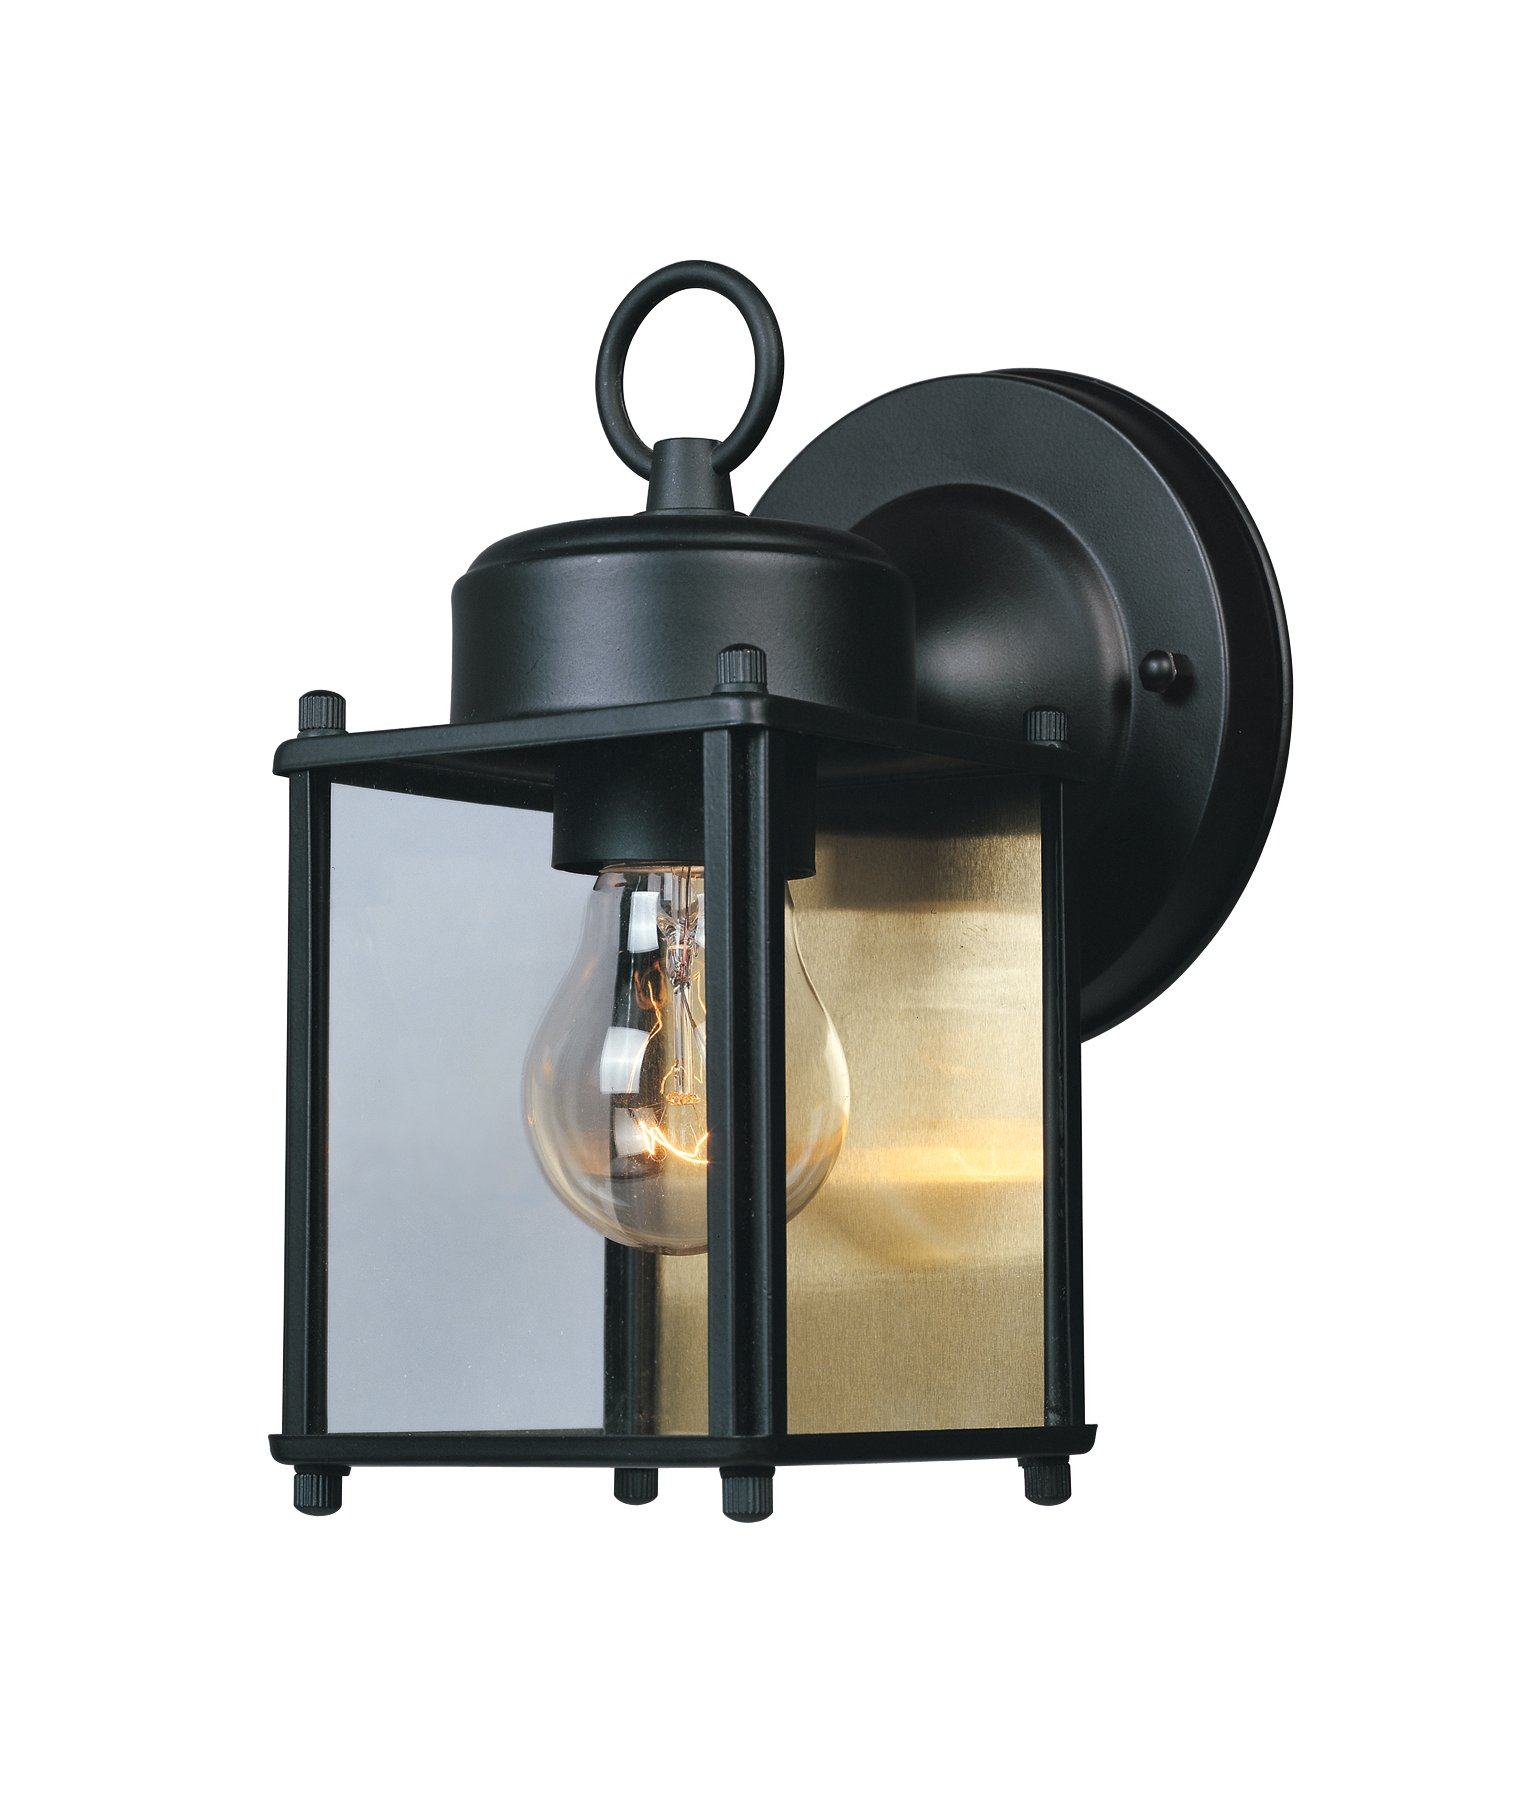 Designers Fountain 1161-BK Value Collection Wall Lanterns, Black by Designers Fountain